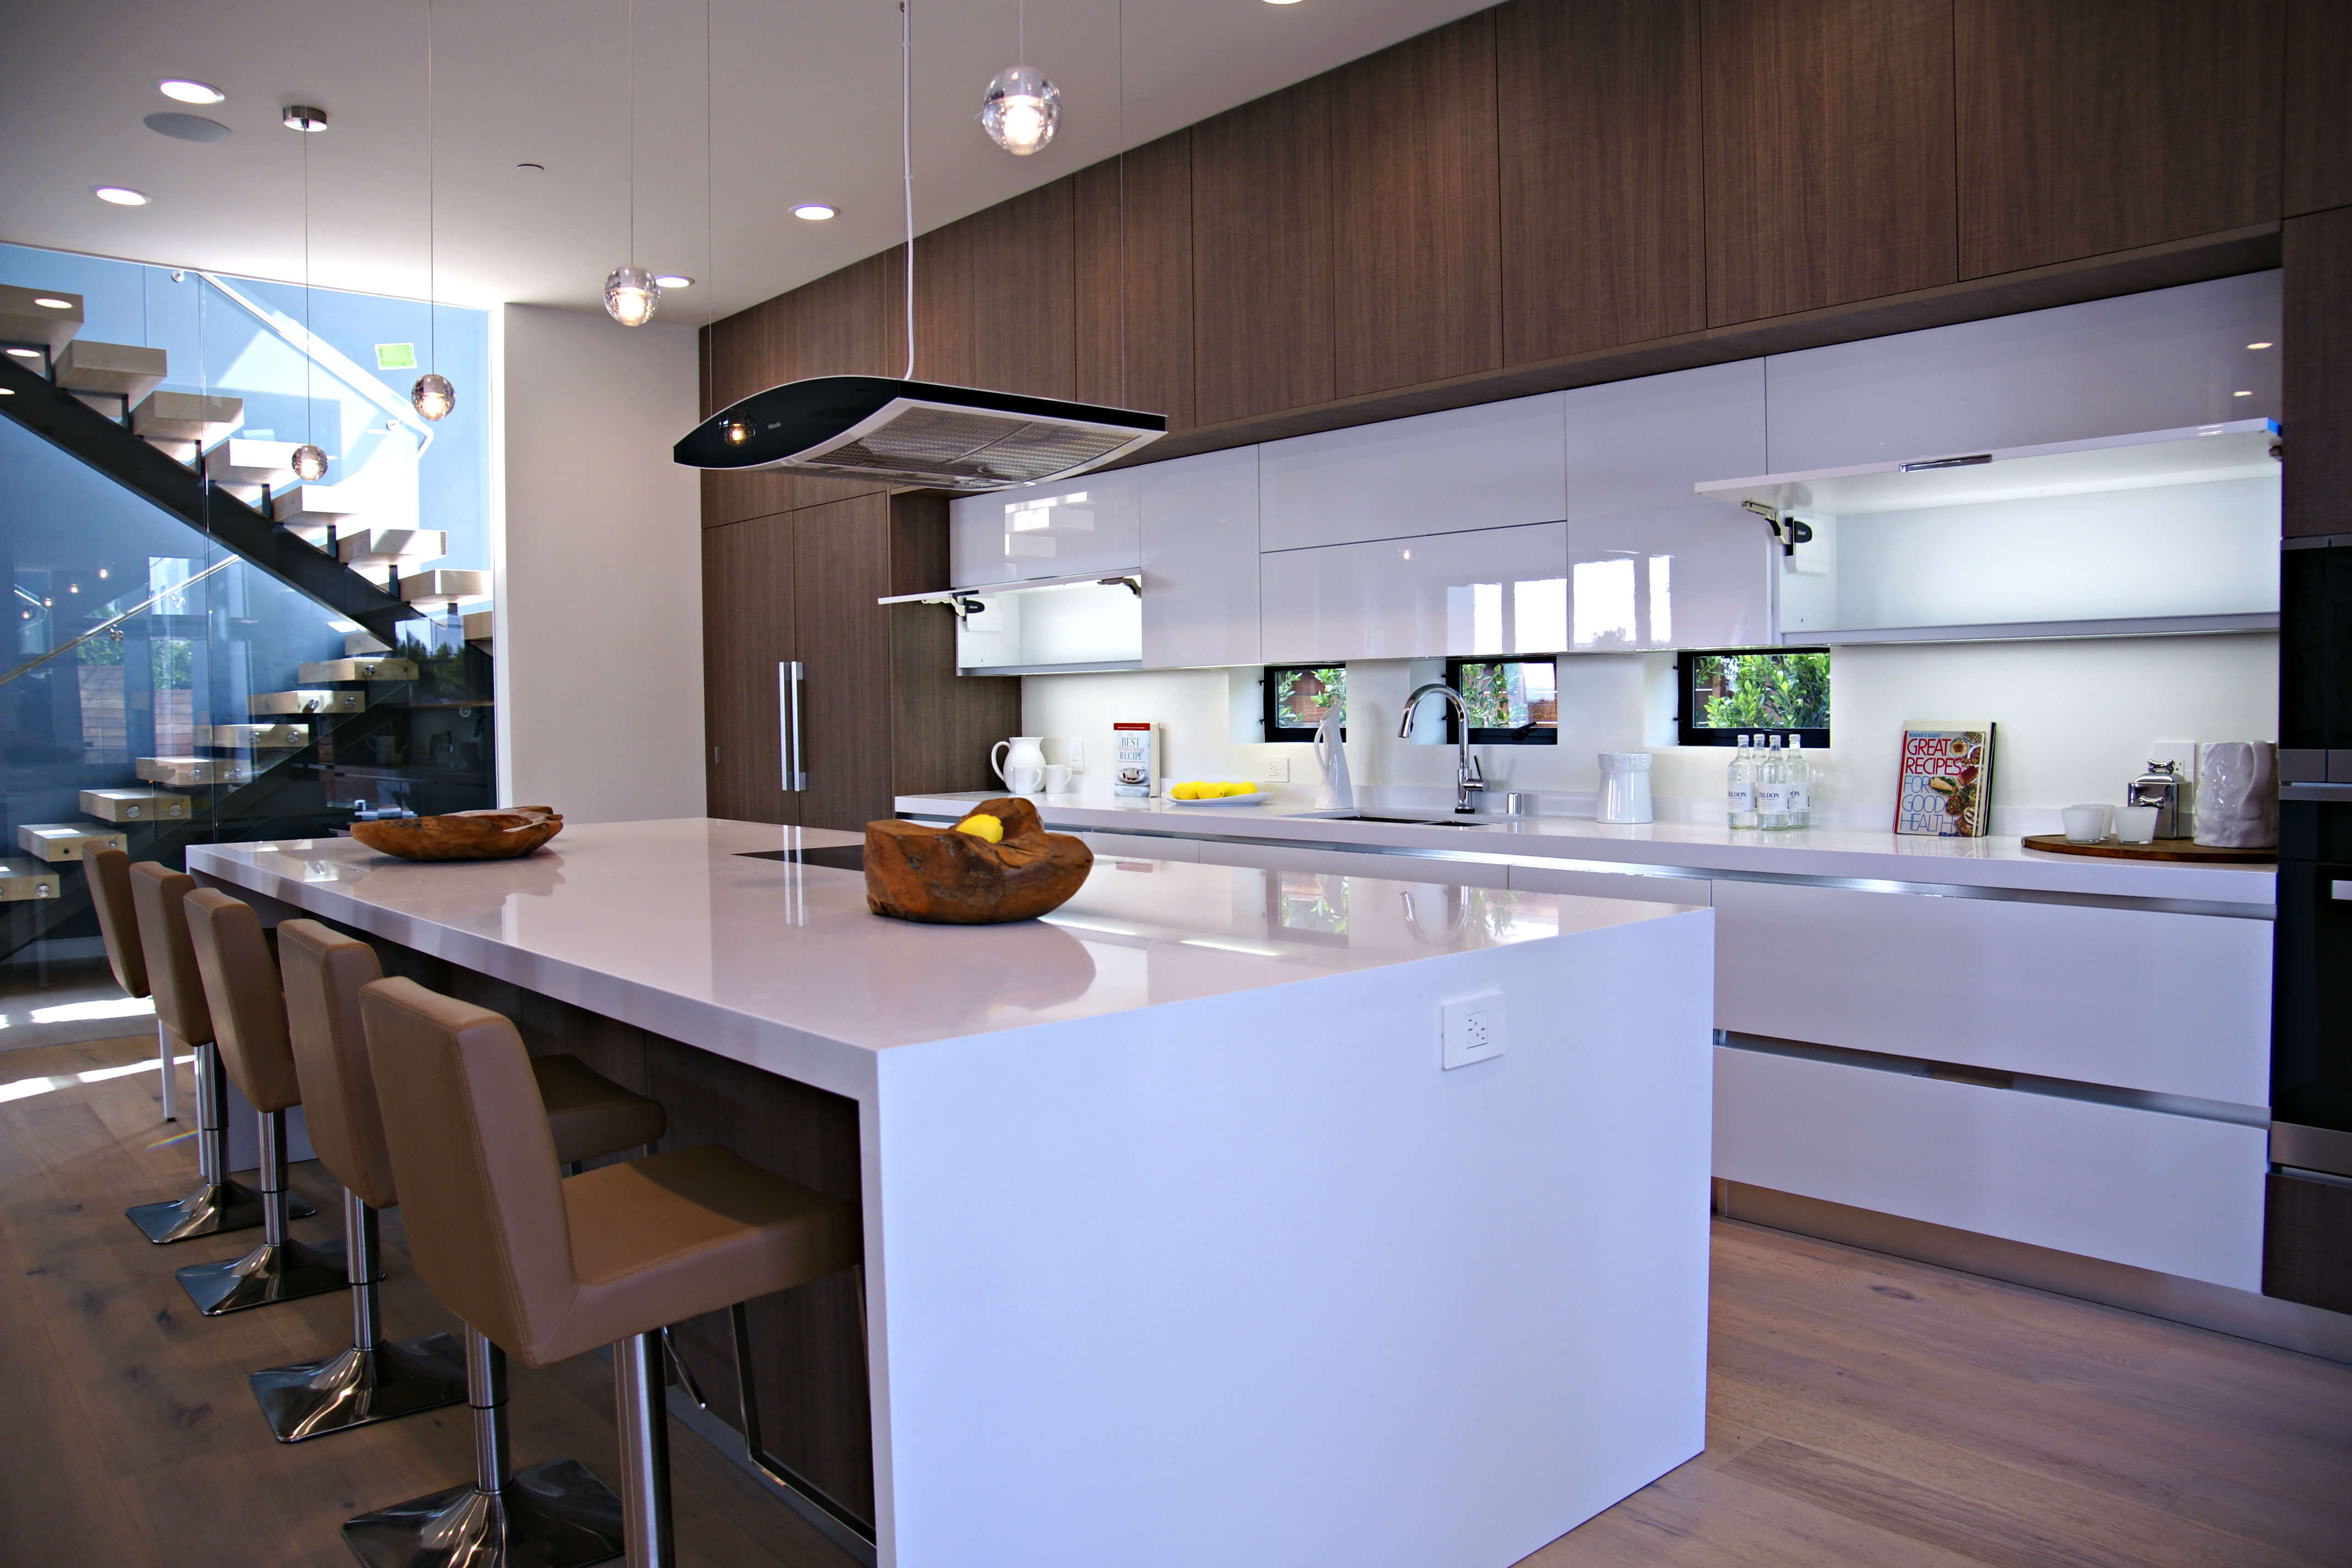 European Kitchen Cabinets Euro Style Cabinetry By Design